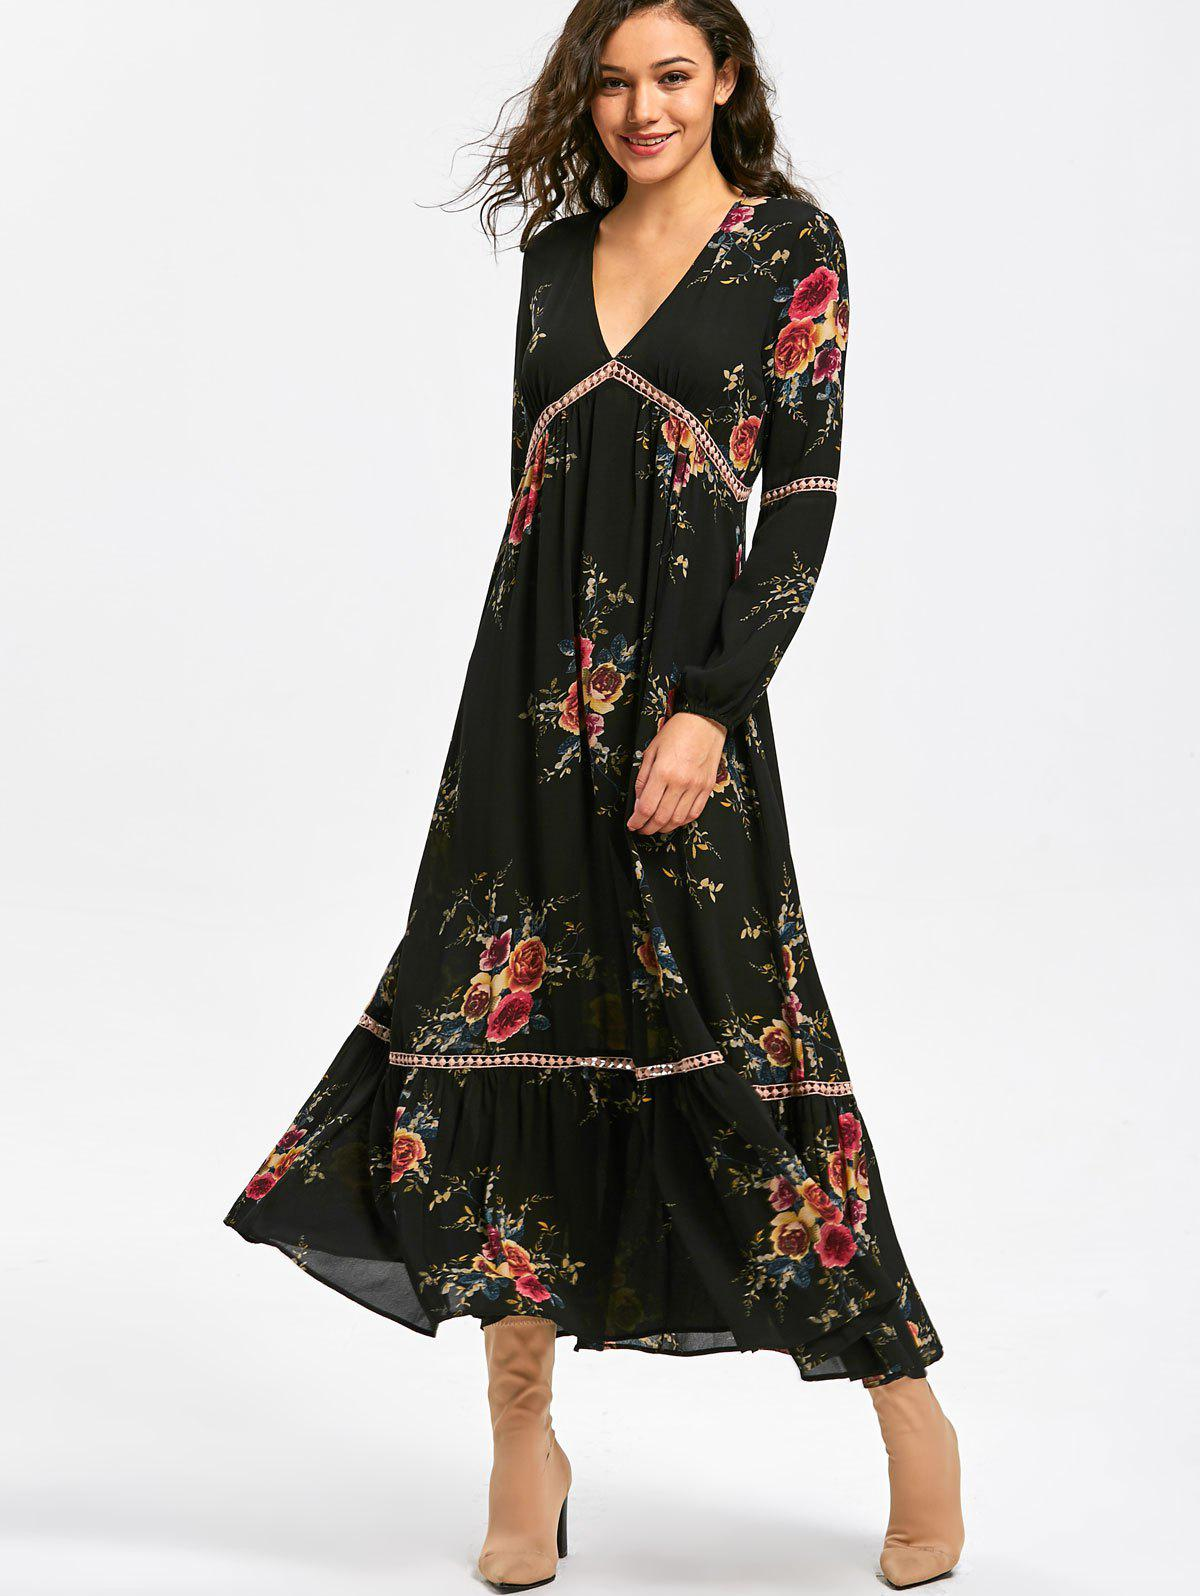 Empire Waisted Floral Print Maxi Dress - BLACK L